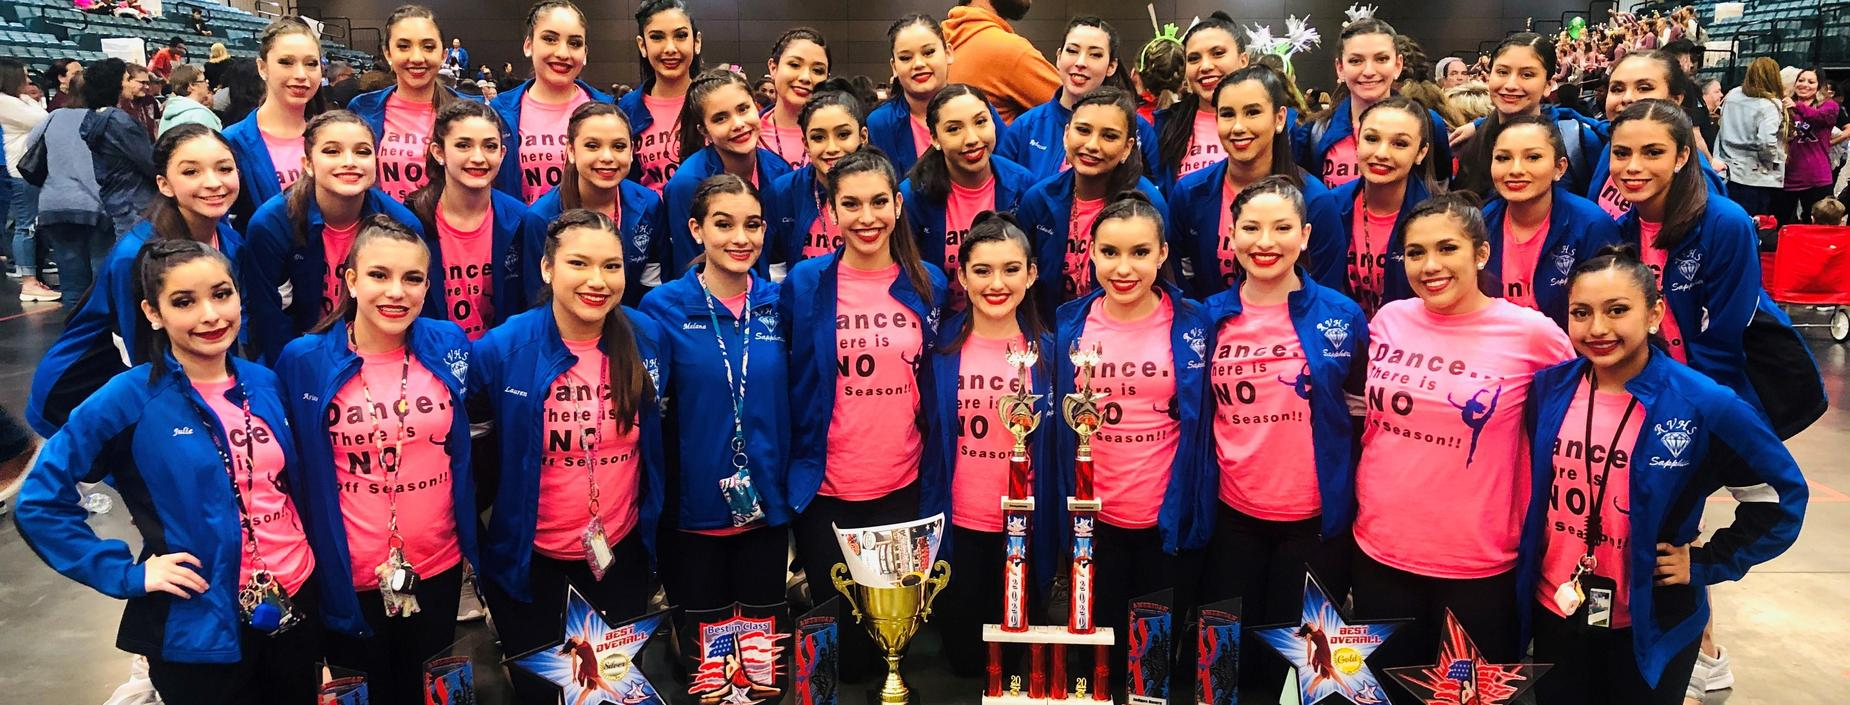 RVHS Sapphires 1st Runner Up Medium team division; 3rd place Overall team